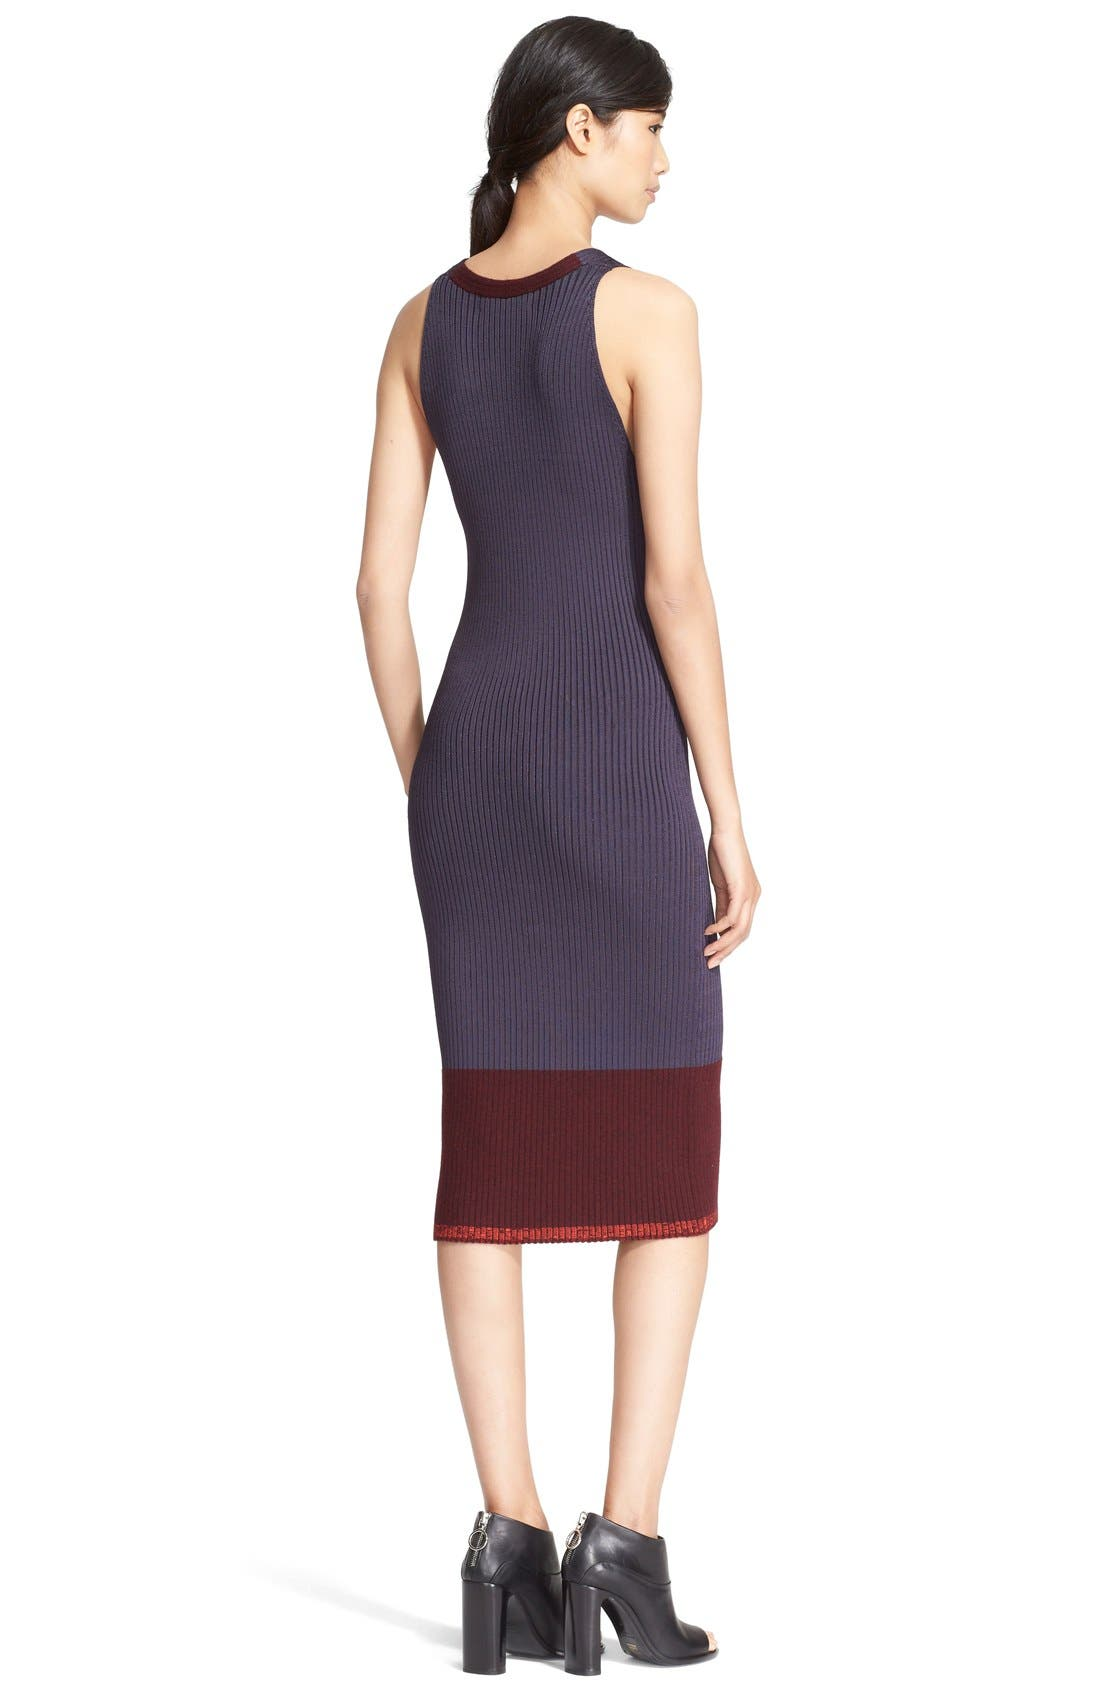 'Kristin' Colorblock Rib Knit Midi Dress,                             Alternate thumbnail 2, color,                             020